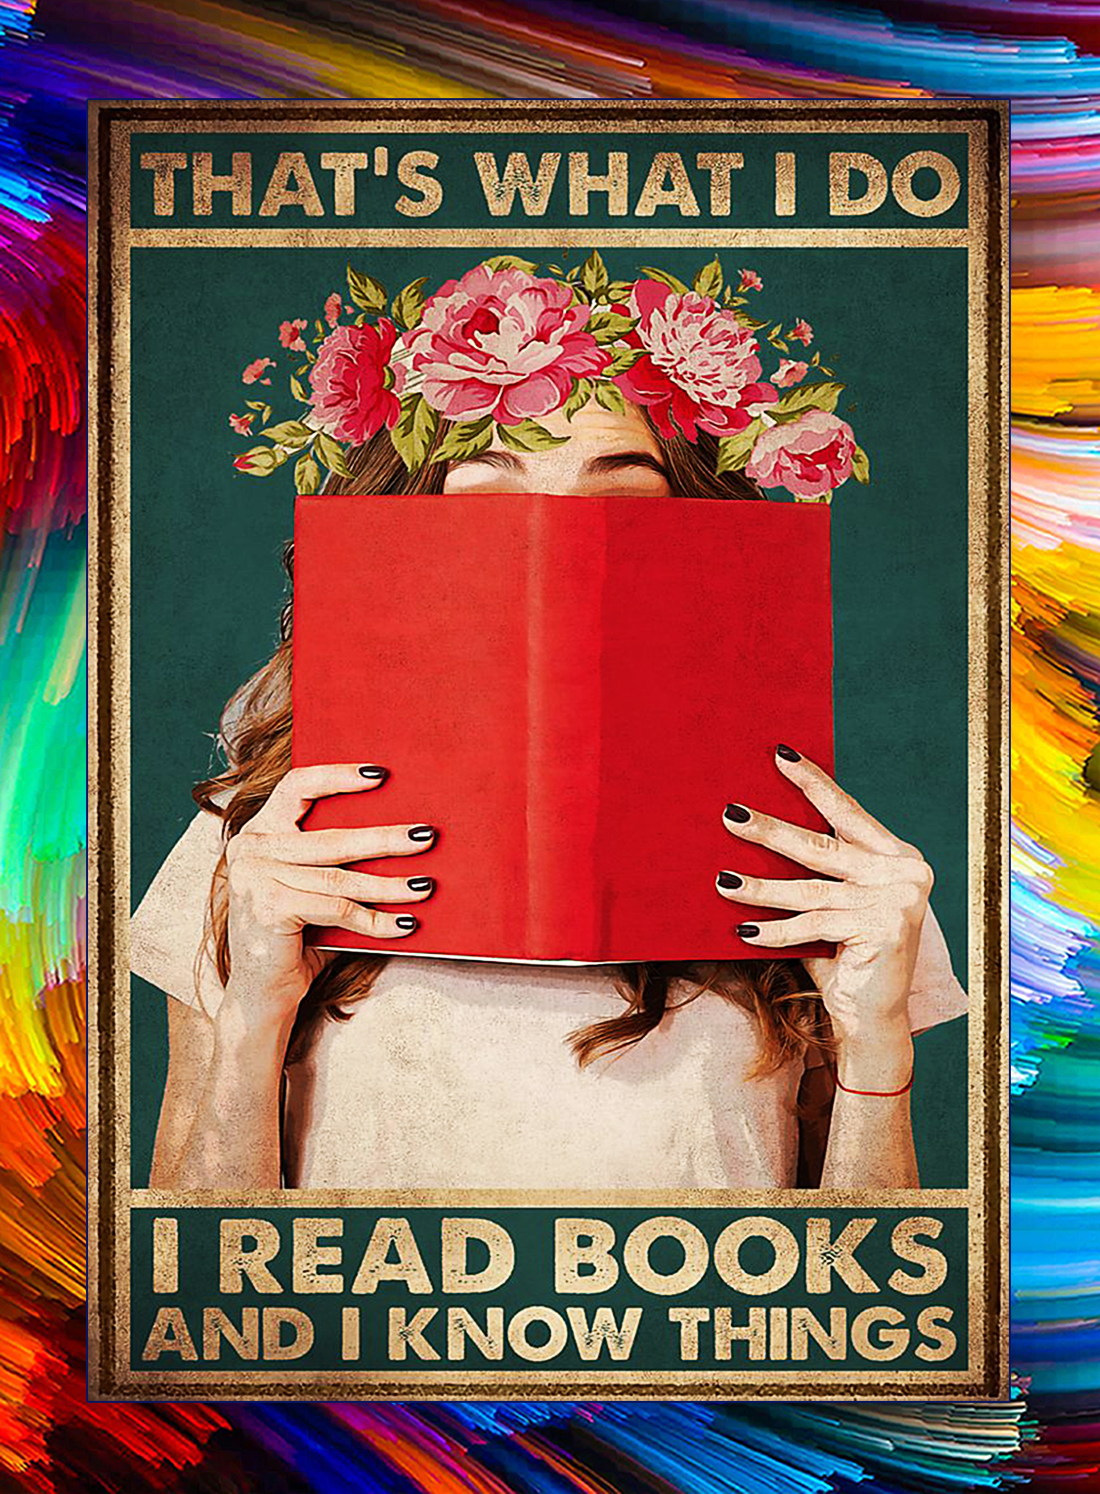 That's what i do i read book and i know things poster - A4